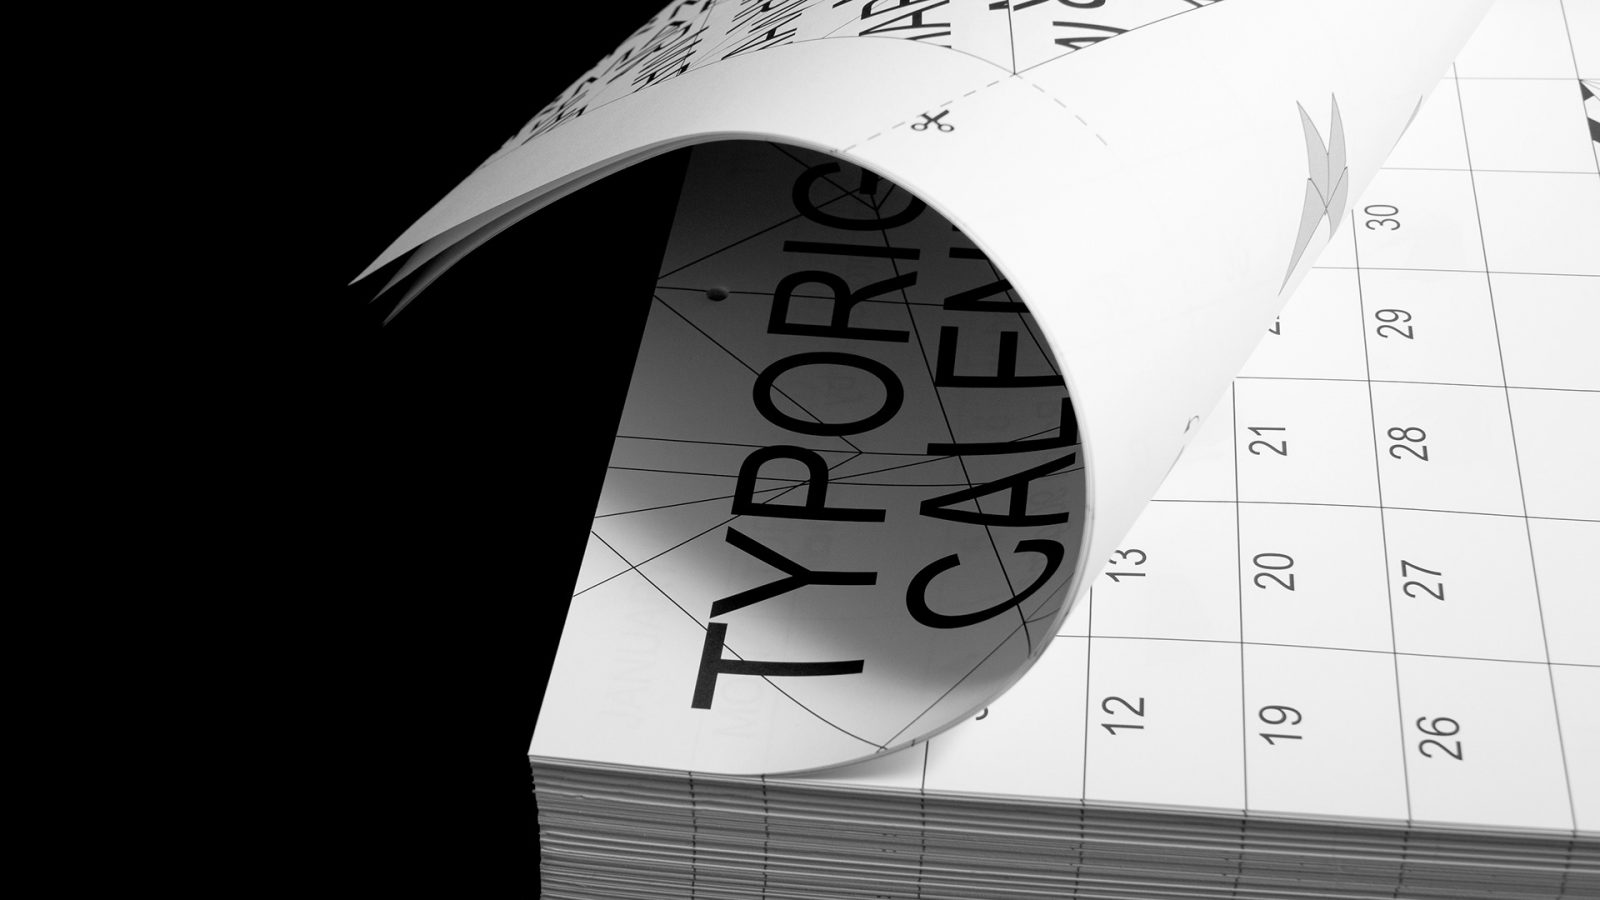 Typorigami Calendar 2021 invites the user to play, with each month including a new origami to try